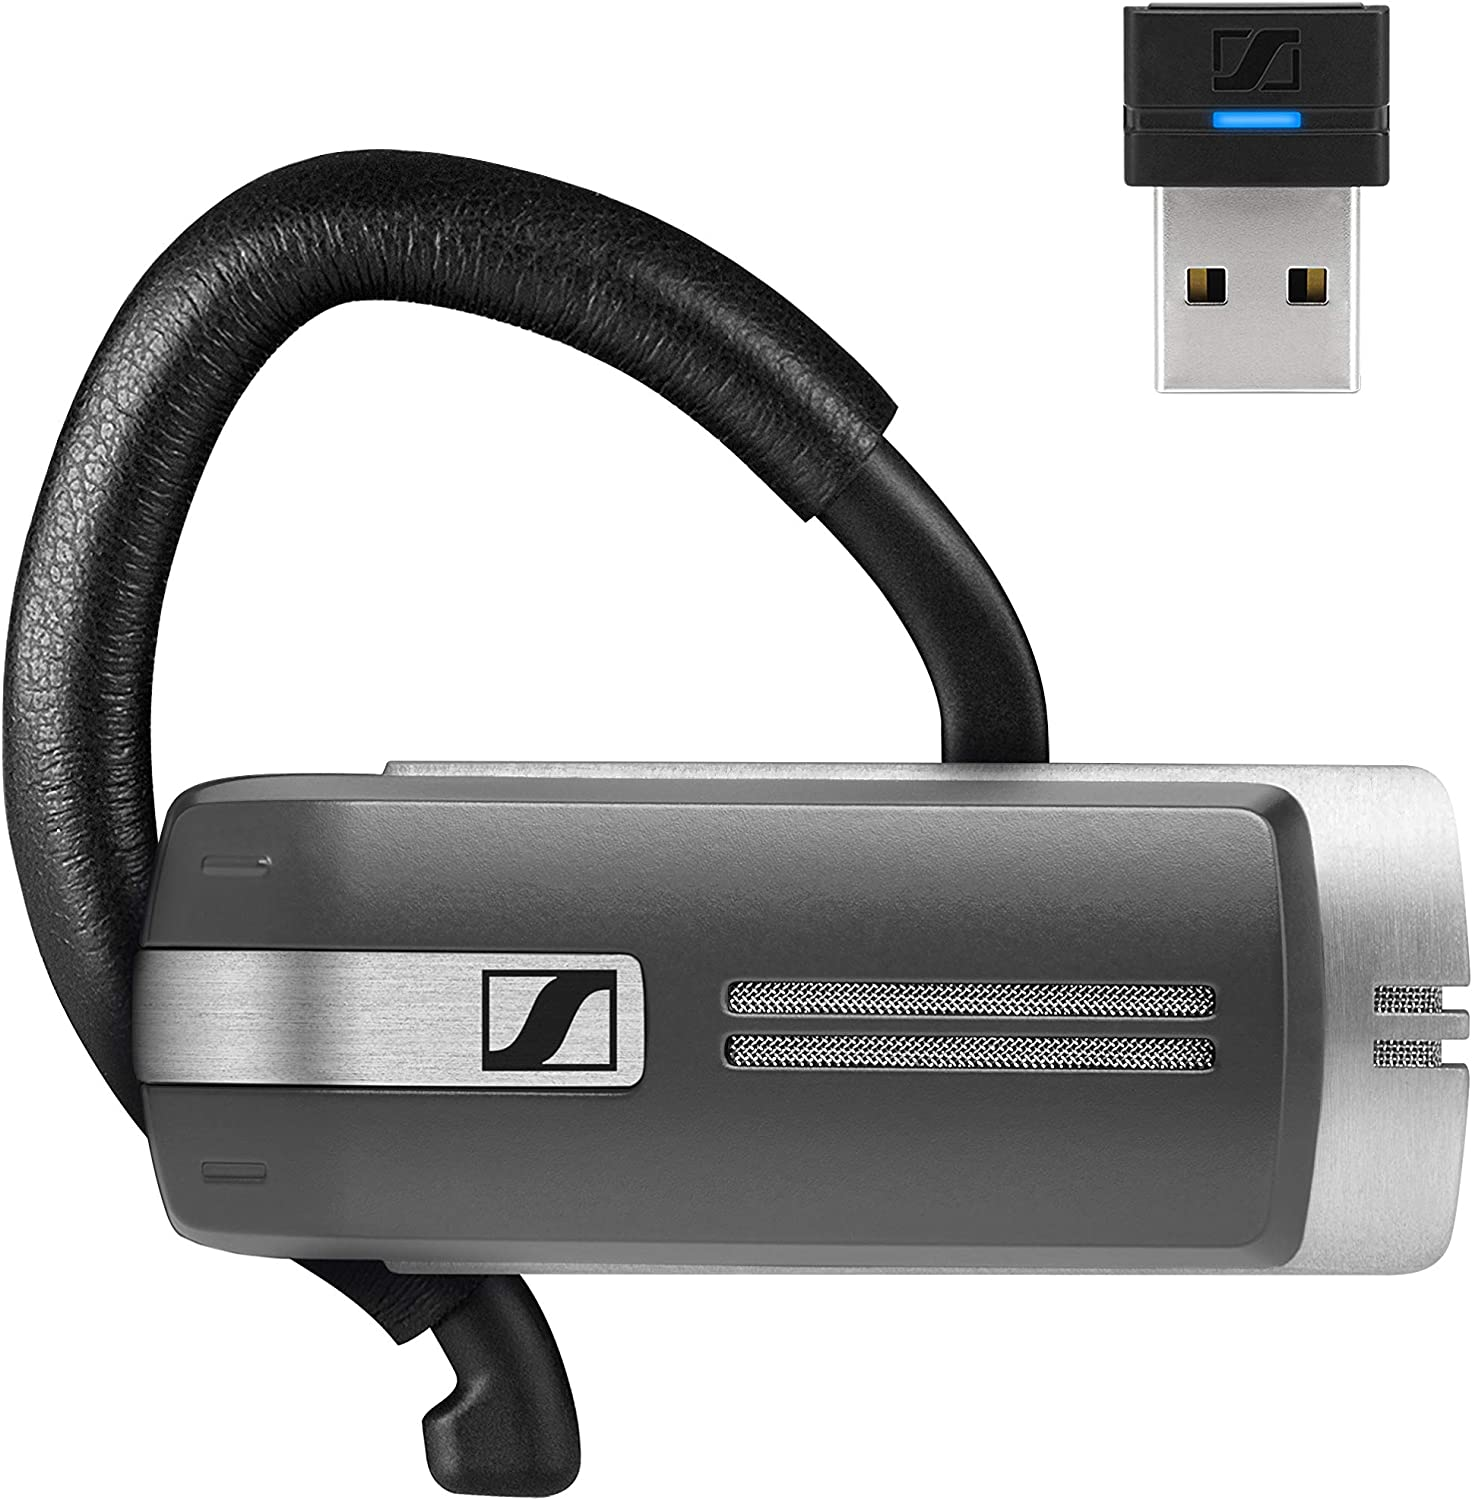 Amazon Com Sennheiser Presence Grey Uc 508342 Dual Connectivity Single Sided Bluetooth Headset For Mobile Device Softphone Pc Connection With Carrying Case And Usb Dongle Black Computers Accessories